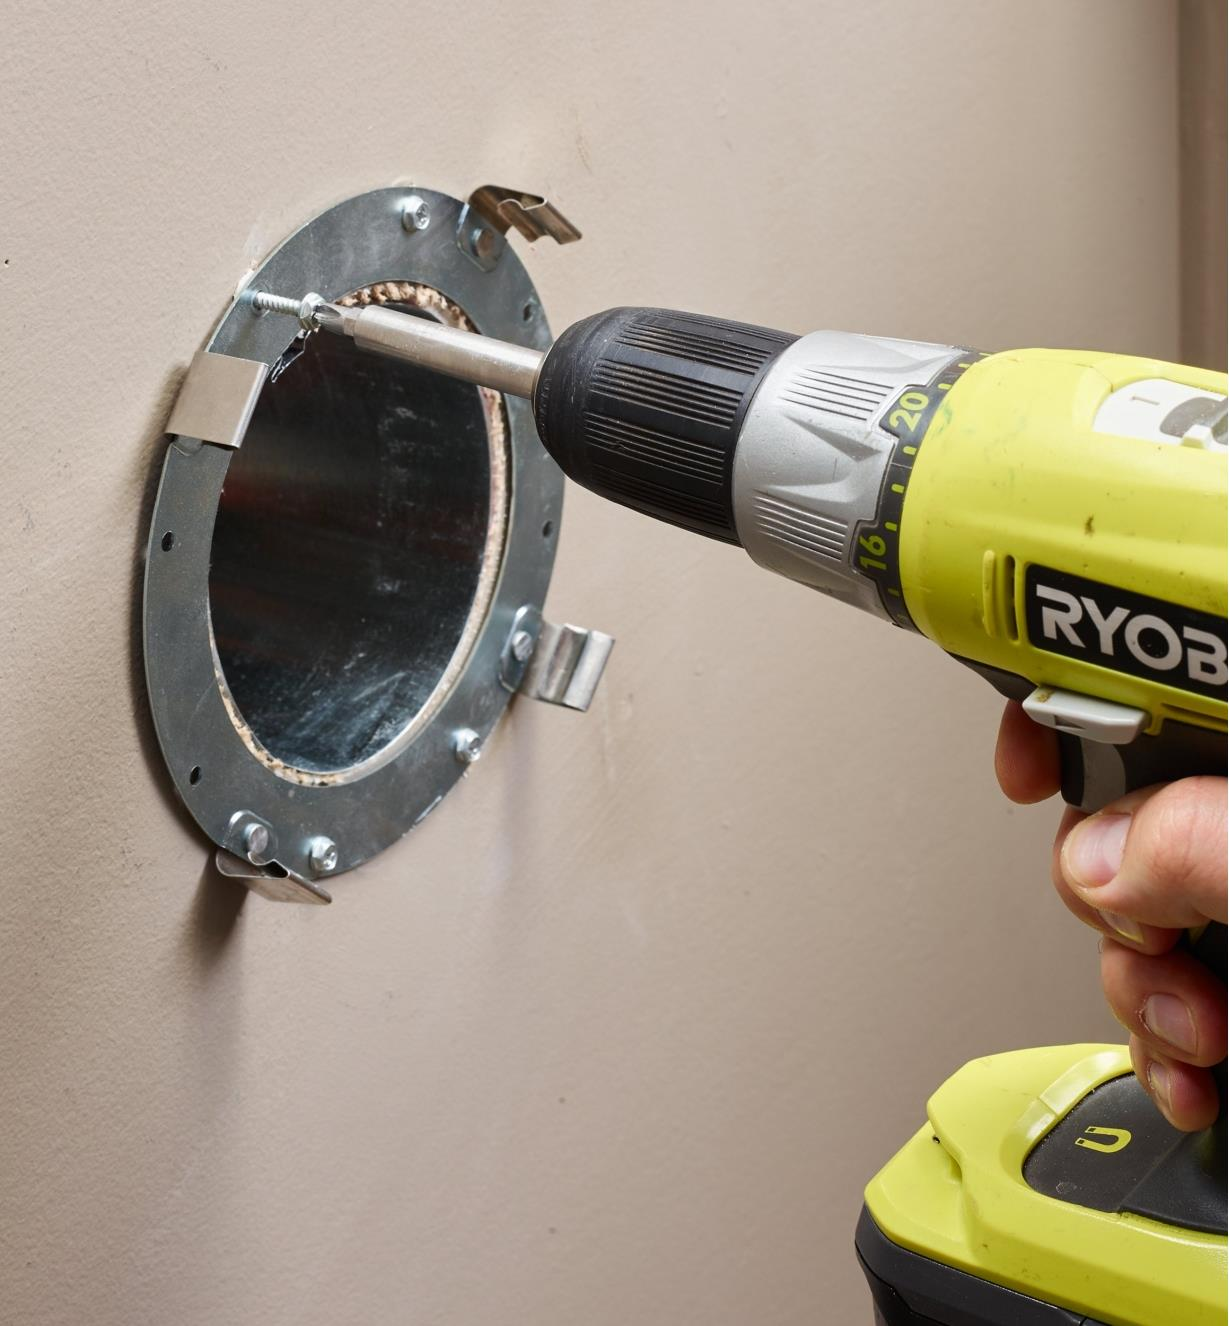 Attaching the steel collar to the wall using a power drill